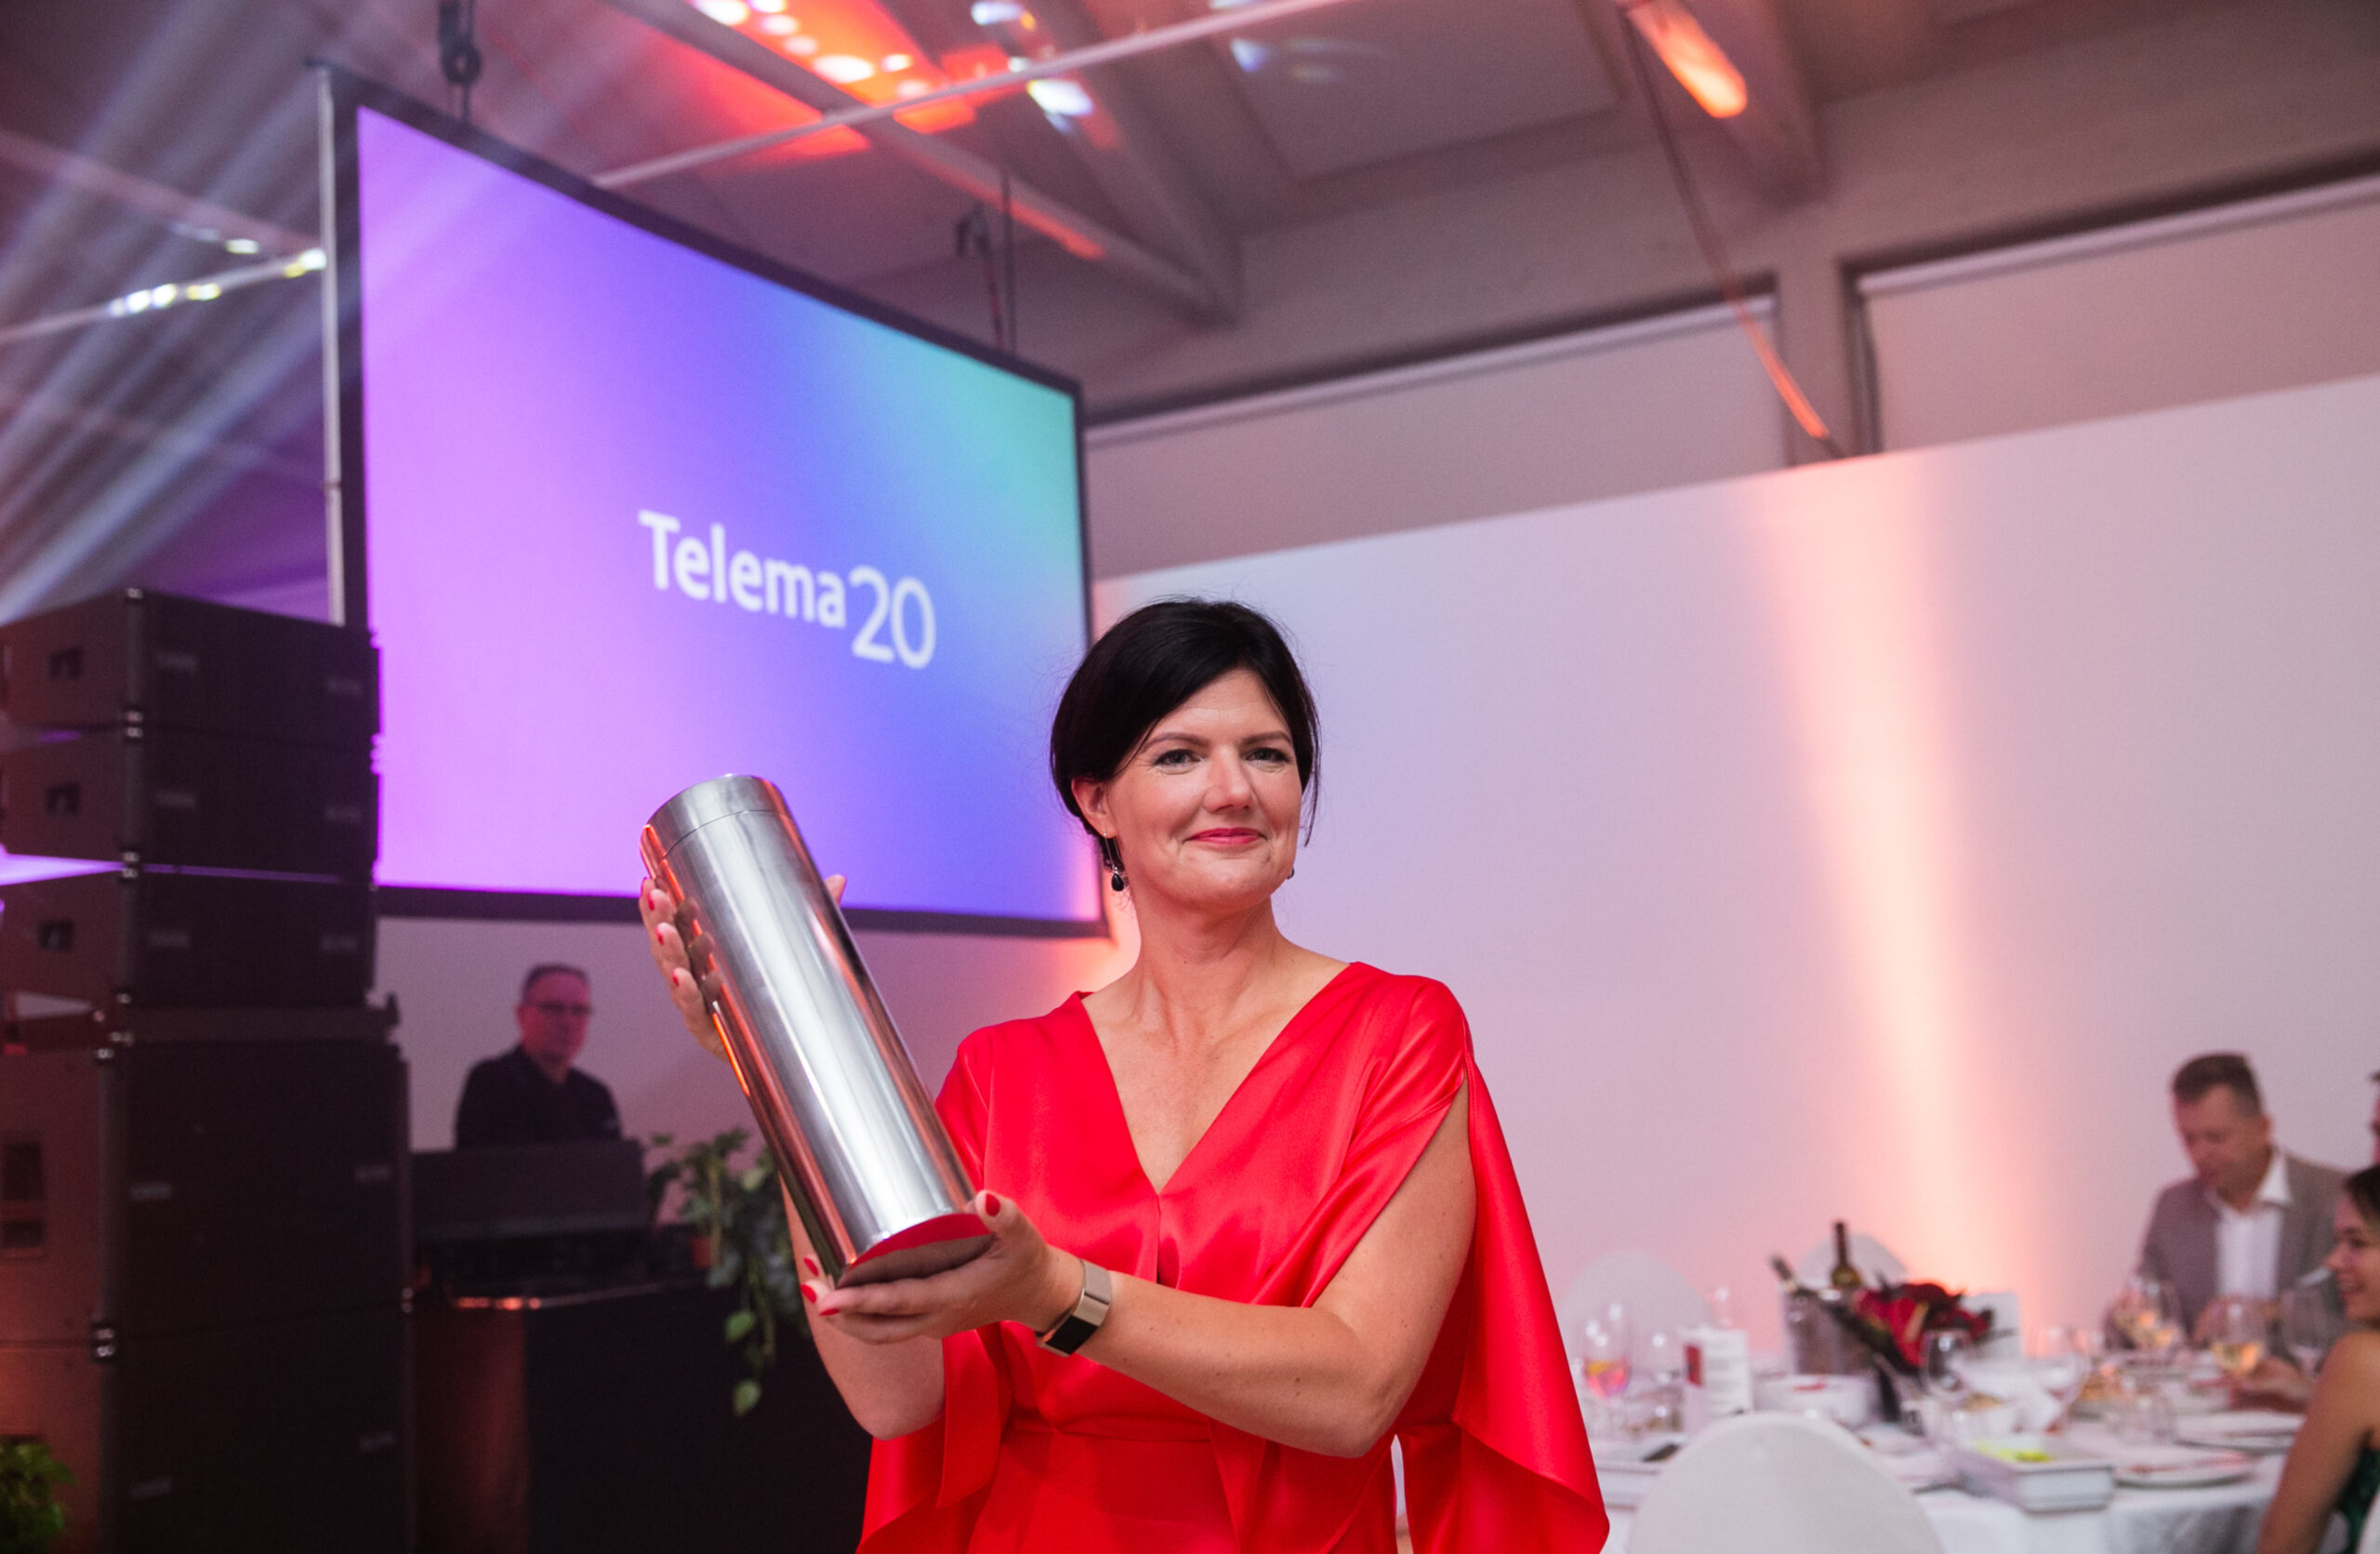 Telema helped save €60 million for its Baltic customers